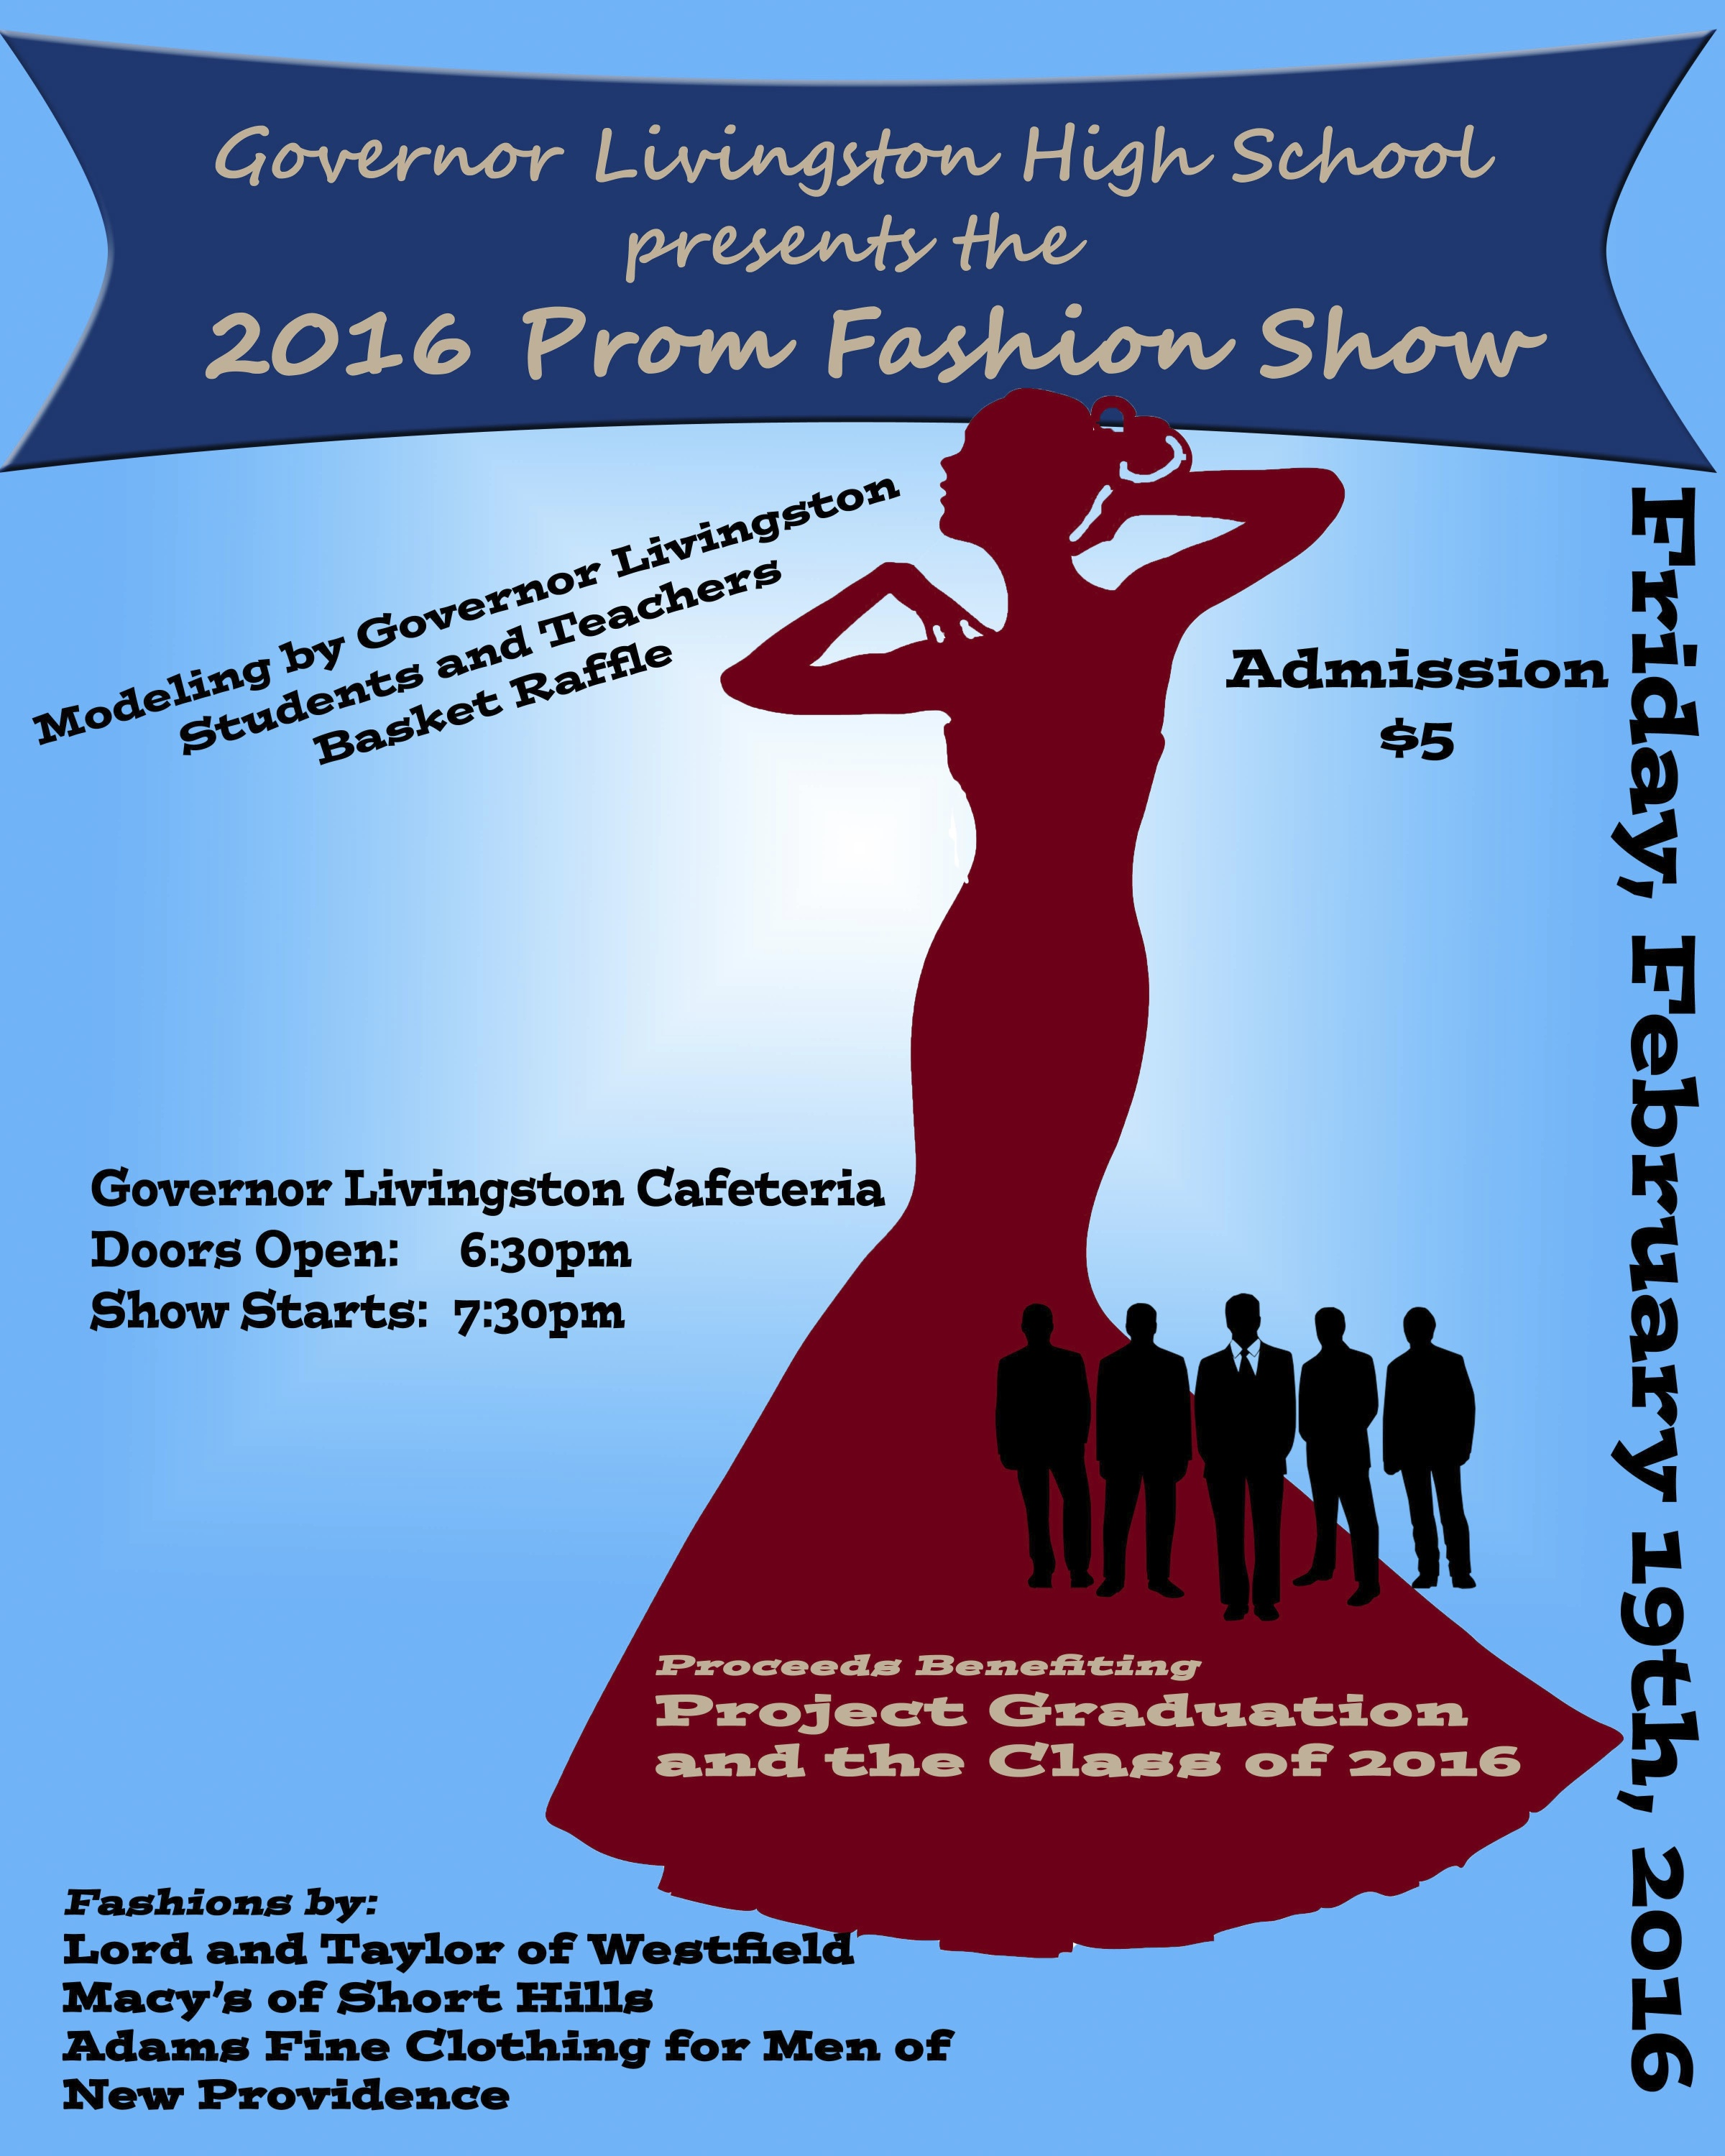 0ee1bbbb94bbb6b67683_best_3e92cd94cb36f8513a64_FASHION_SHOW_POSTER_2016.jpg